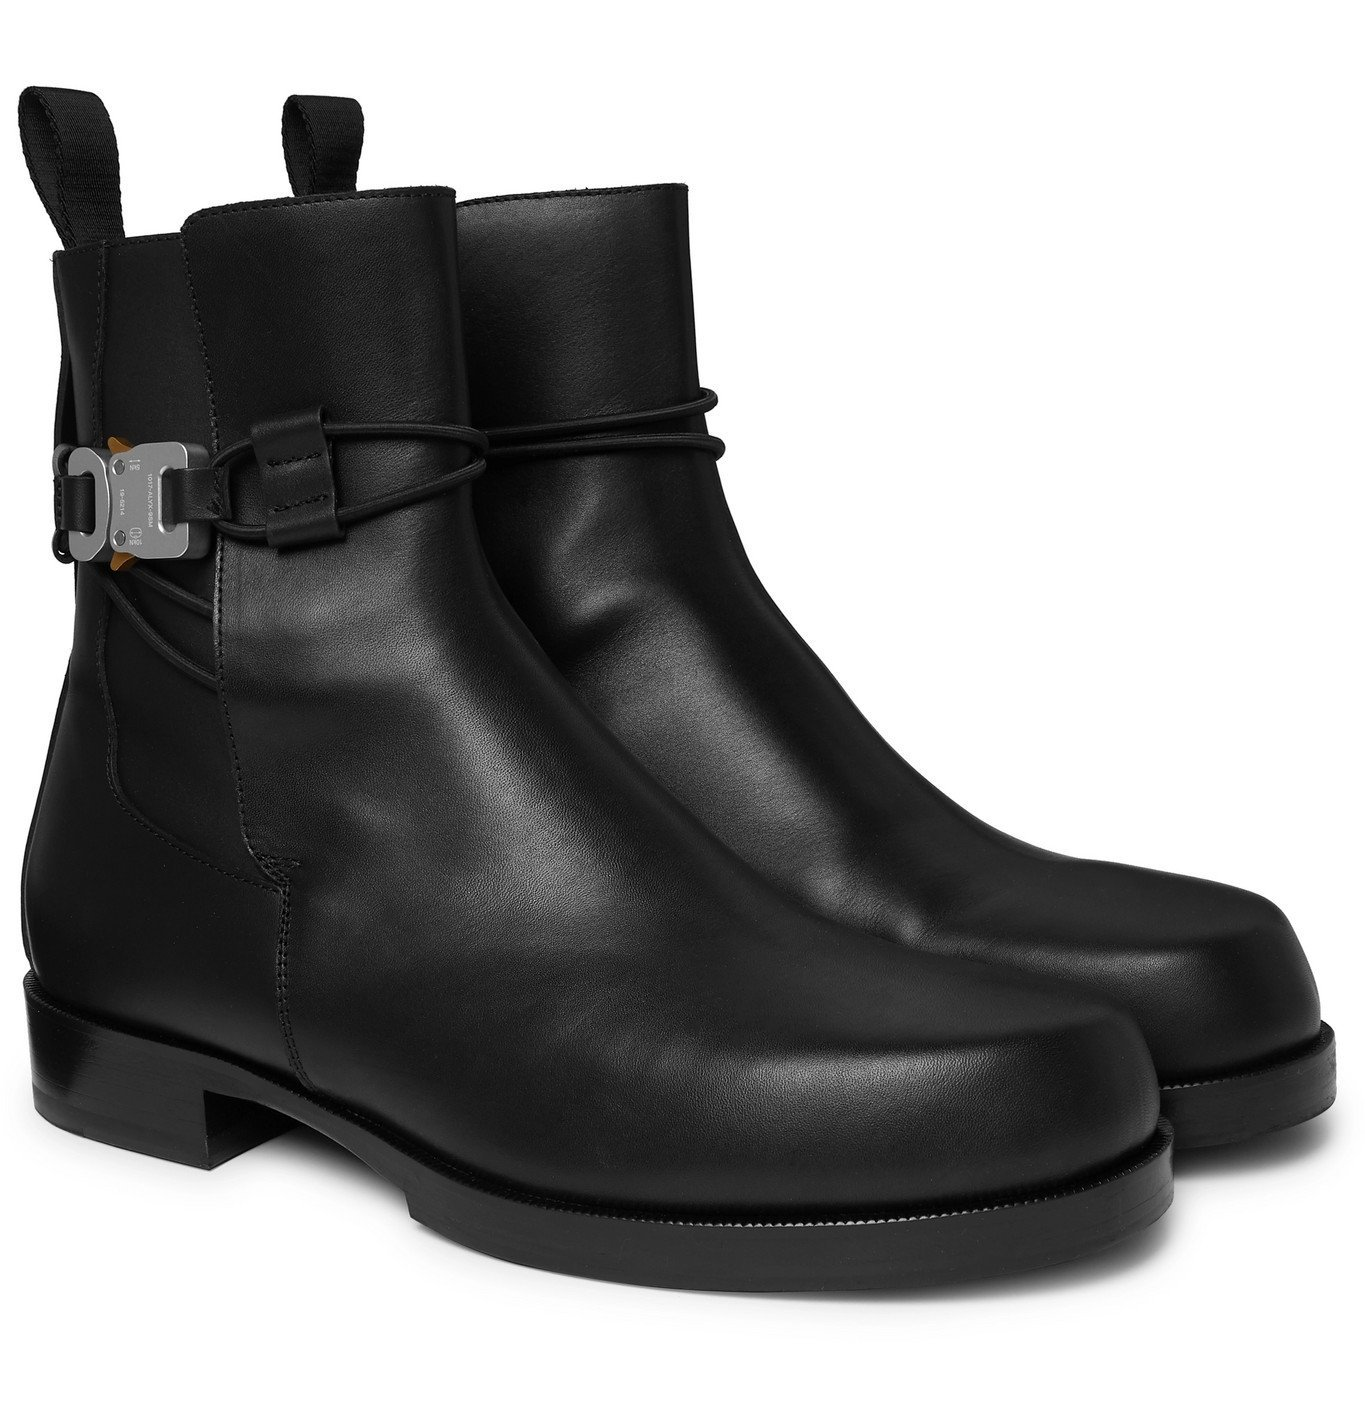 Photo: 1017 ALYX 9SM - Buckled Leather Chelsea Boots - Black